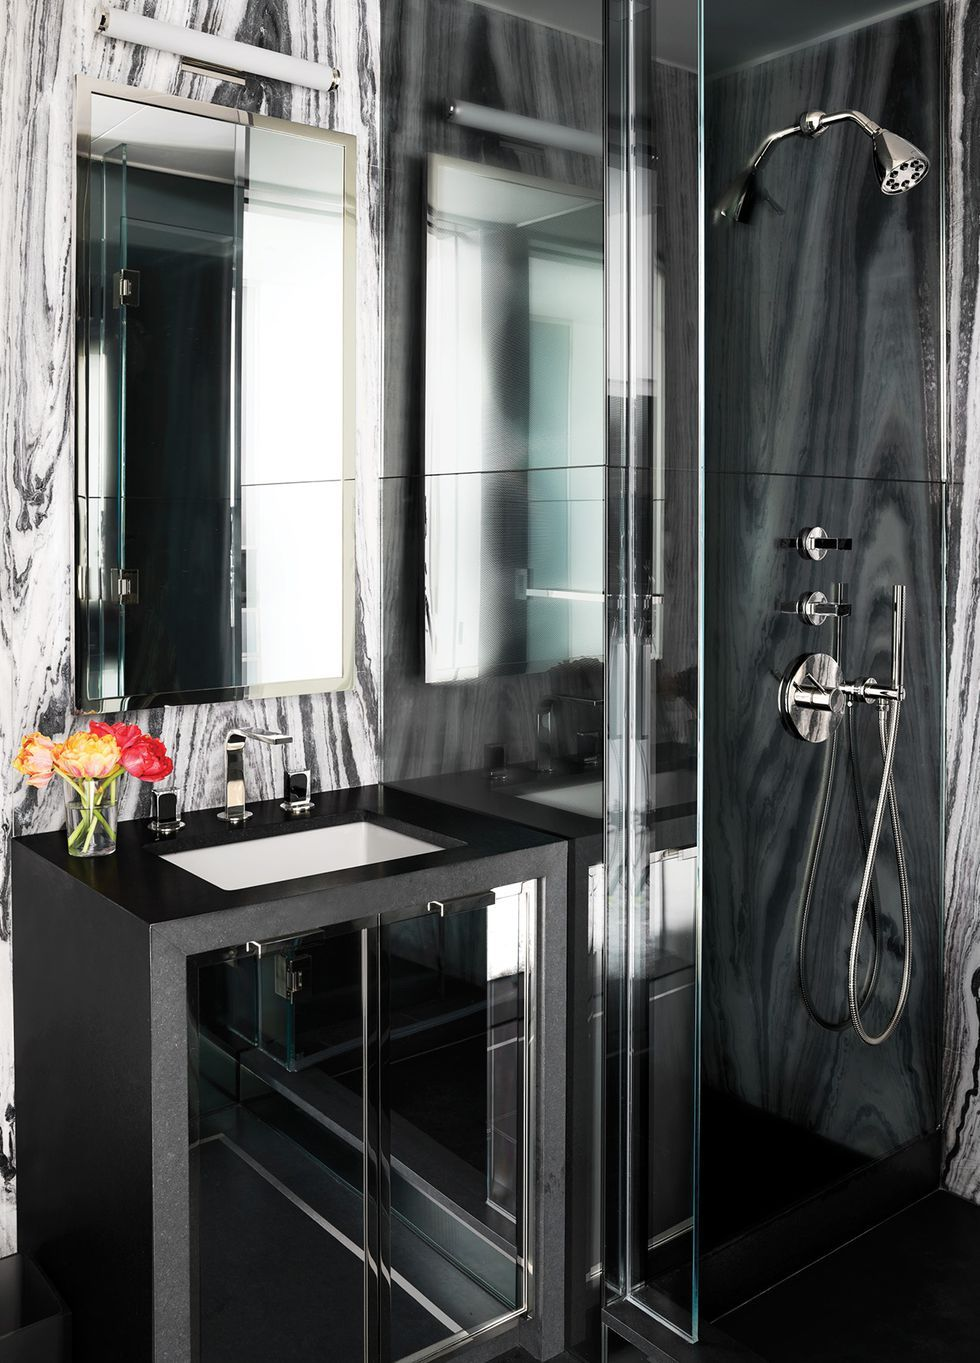 Small Bathrooms Design Ideas 2020 - How to Decorate Small ... on Small Space Small Bathroom Ideas With Shower id=82755